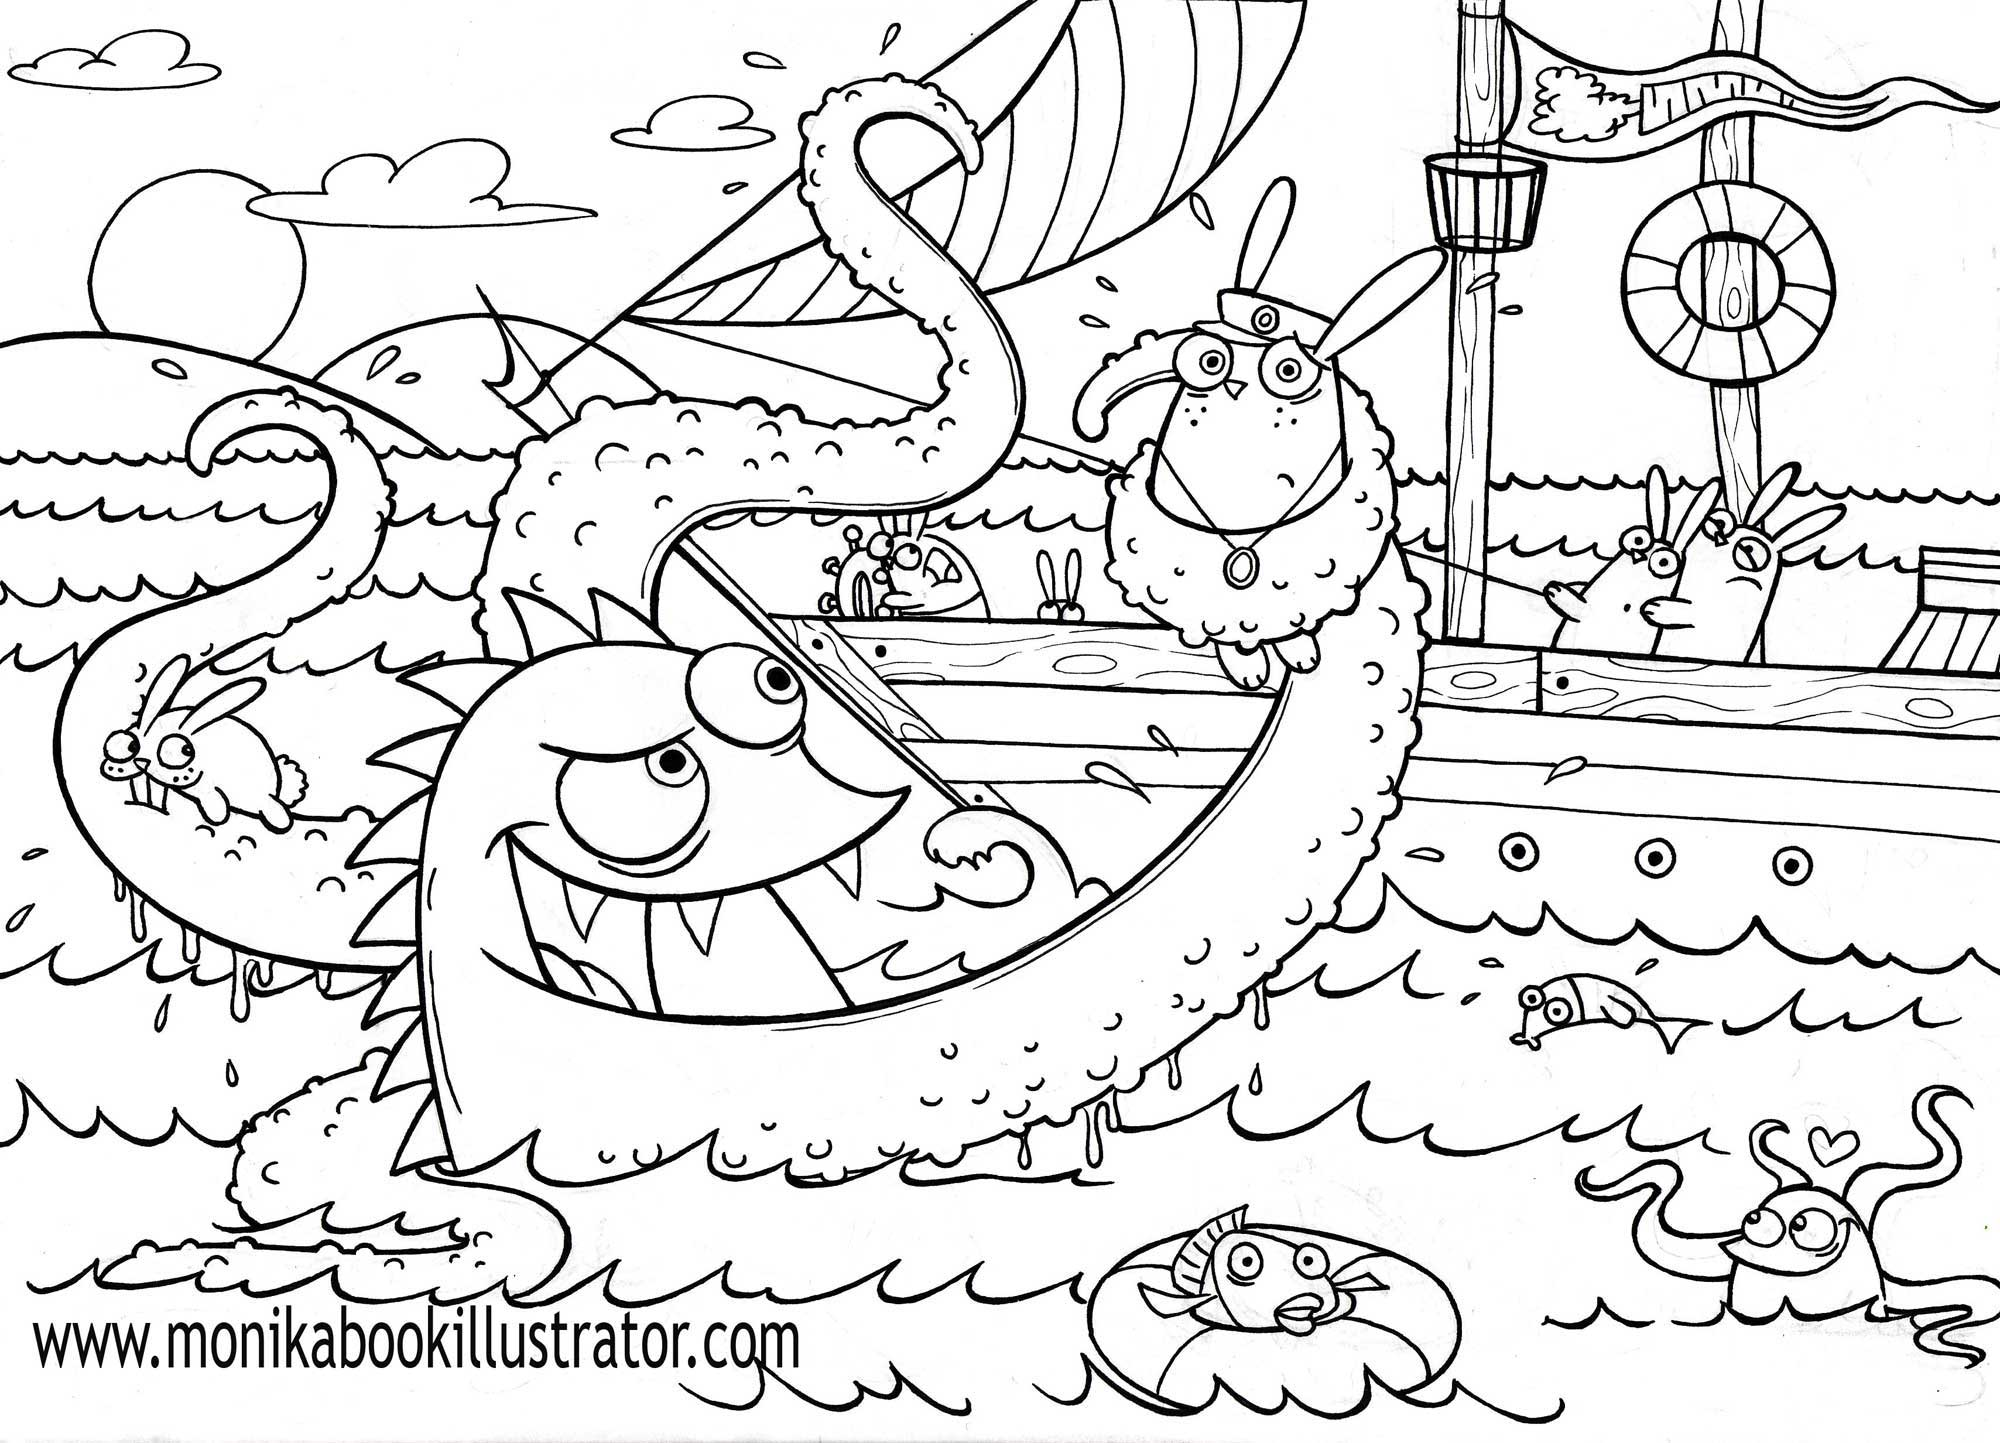 kids monster coloring pages best picture of monster inc coloring pages birijuscom monster kids coloring pages